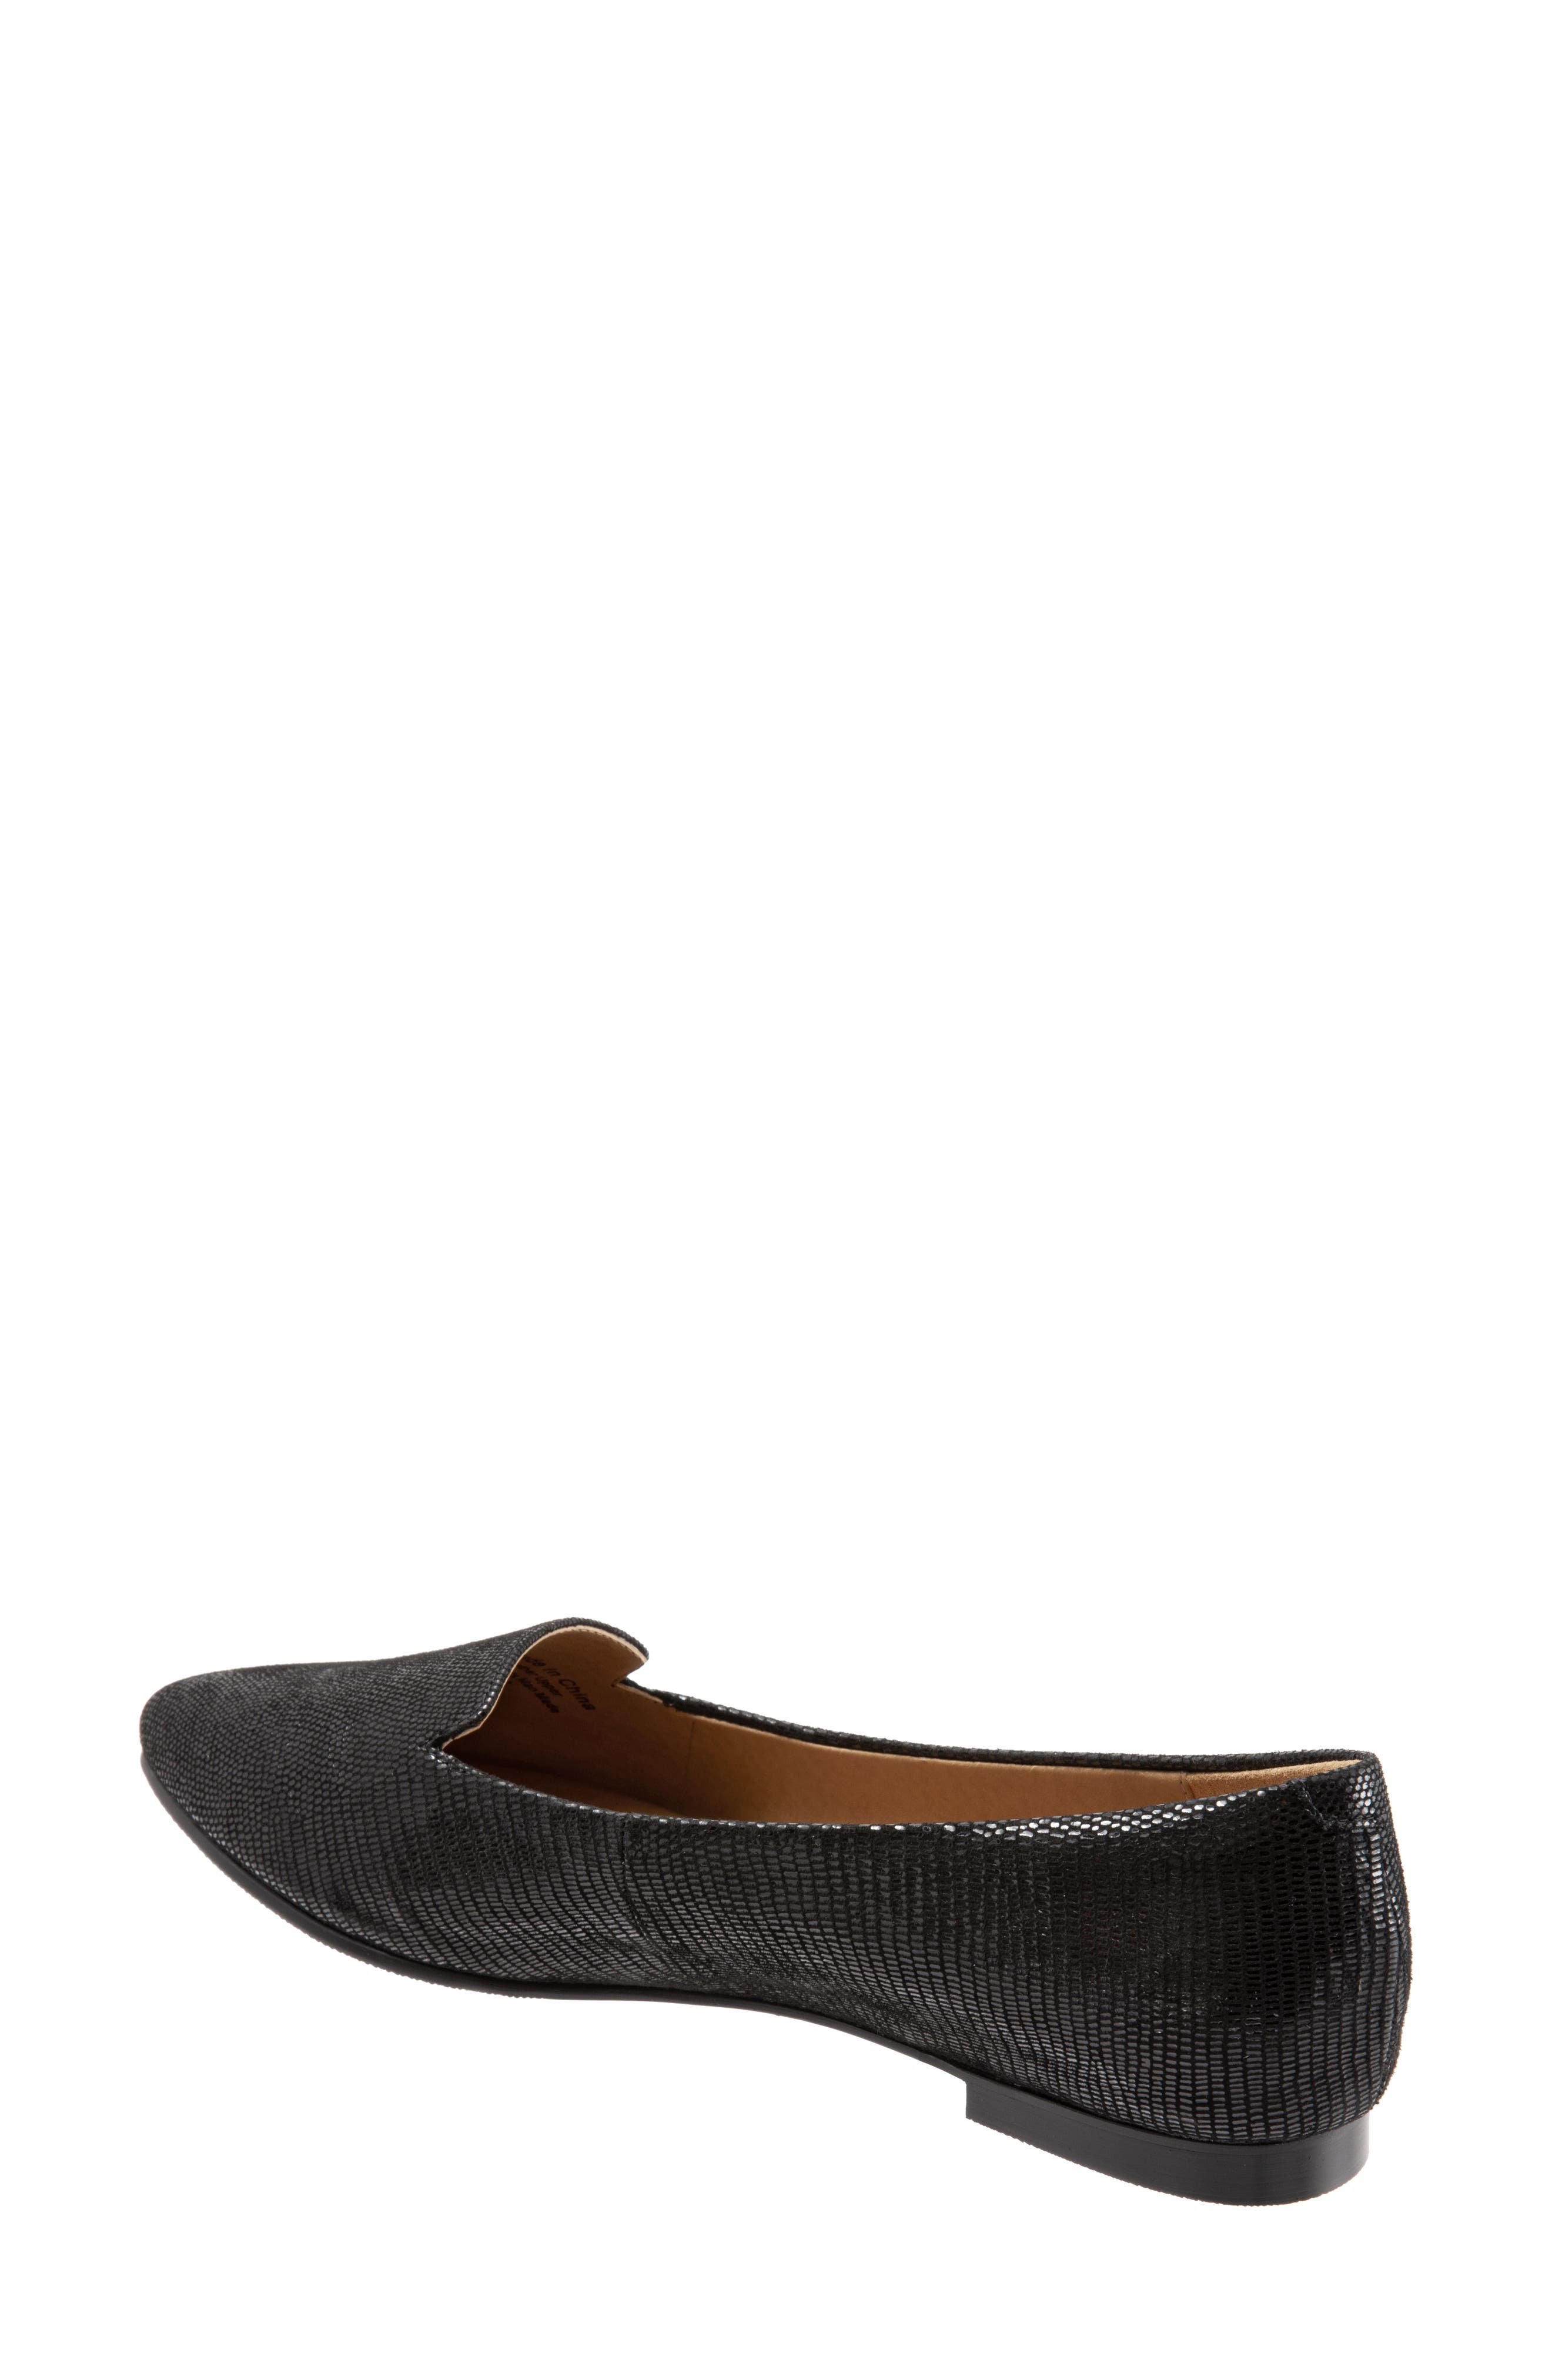 TROTTERS, Harlowe Pointy Toe Loafer, Alternate thumbnail 2, color, DARK BLACK LEATHER